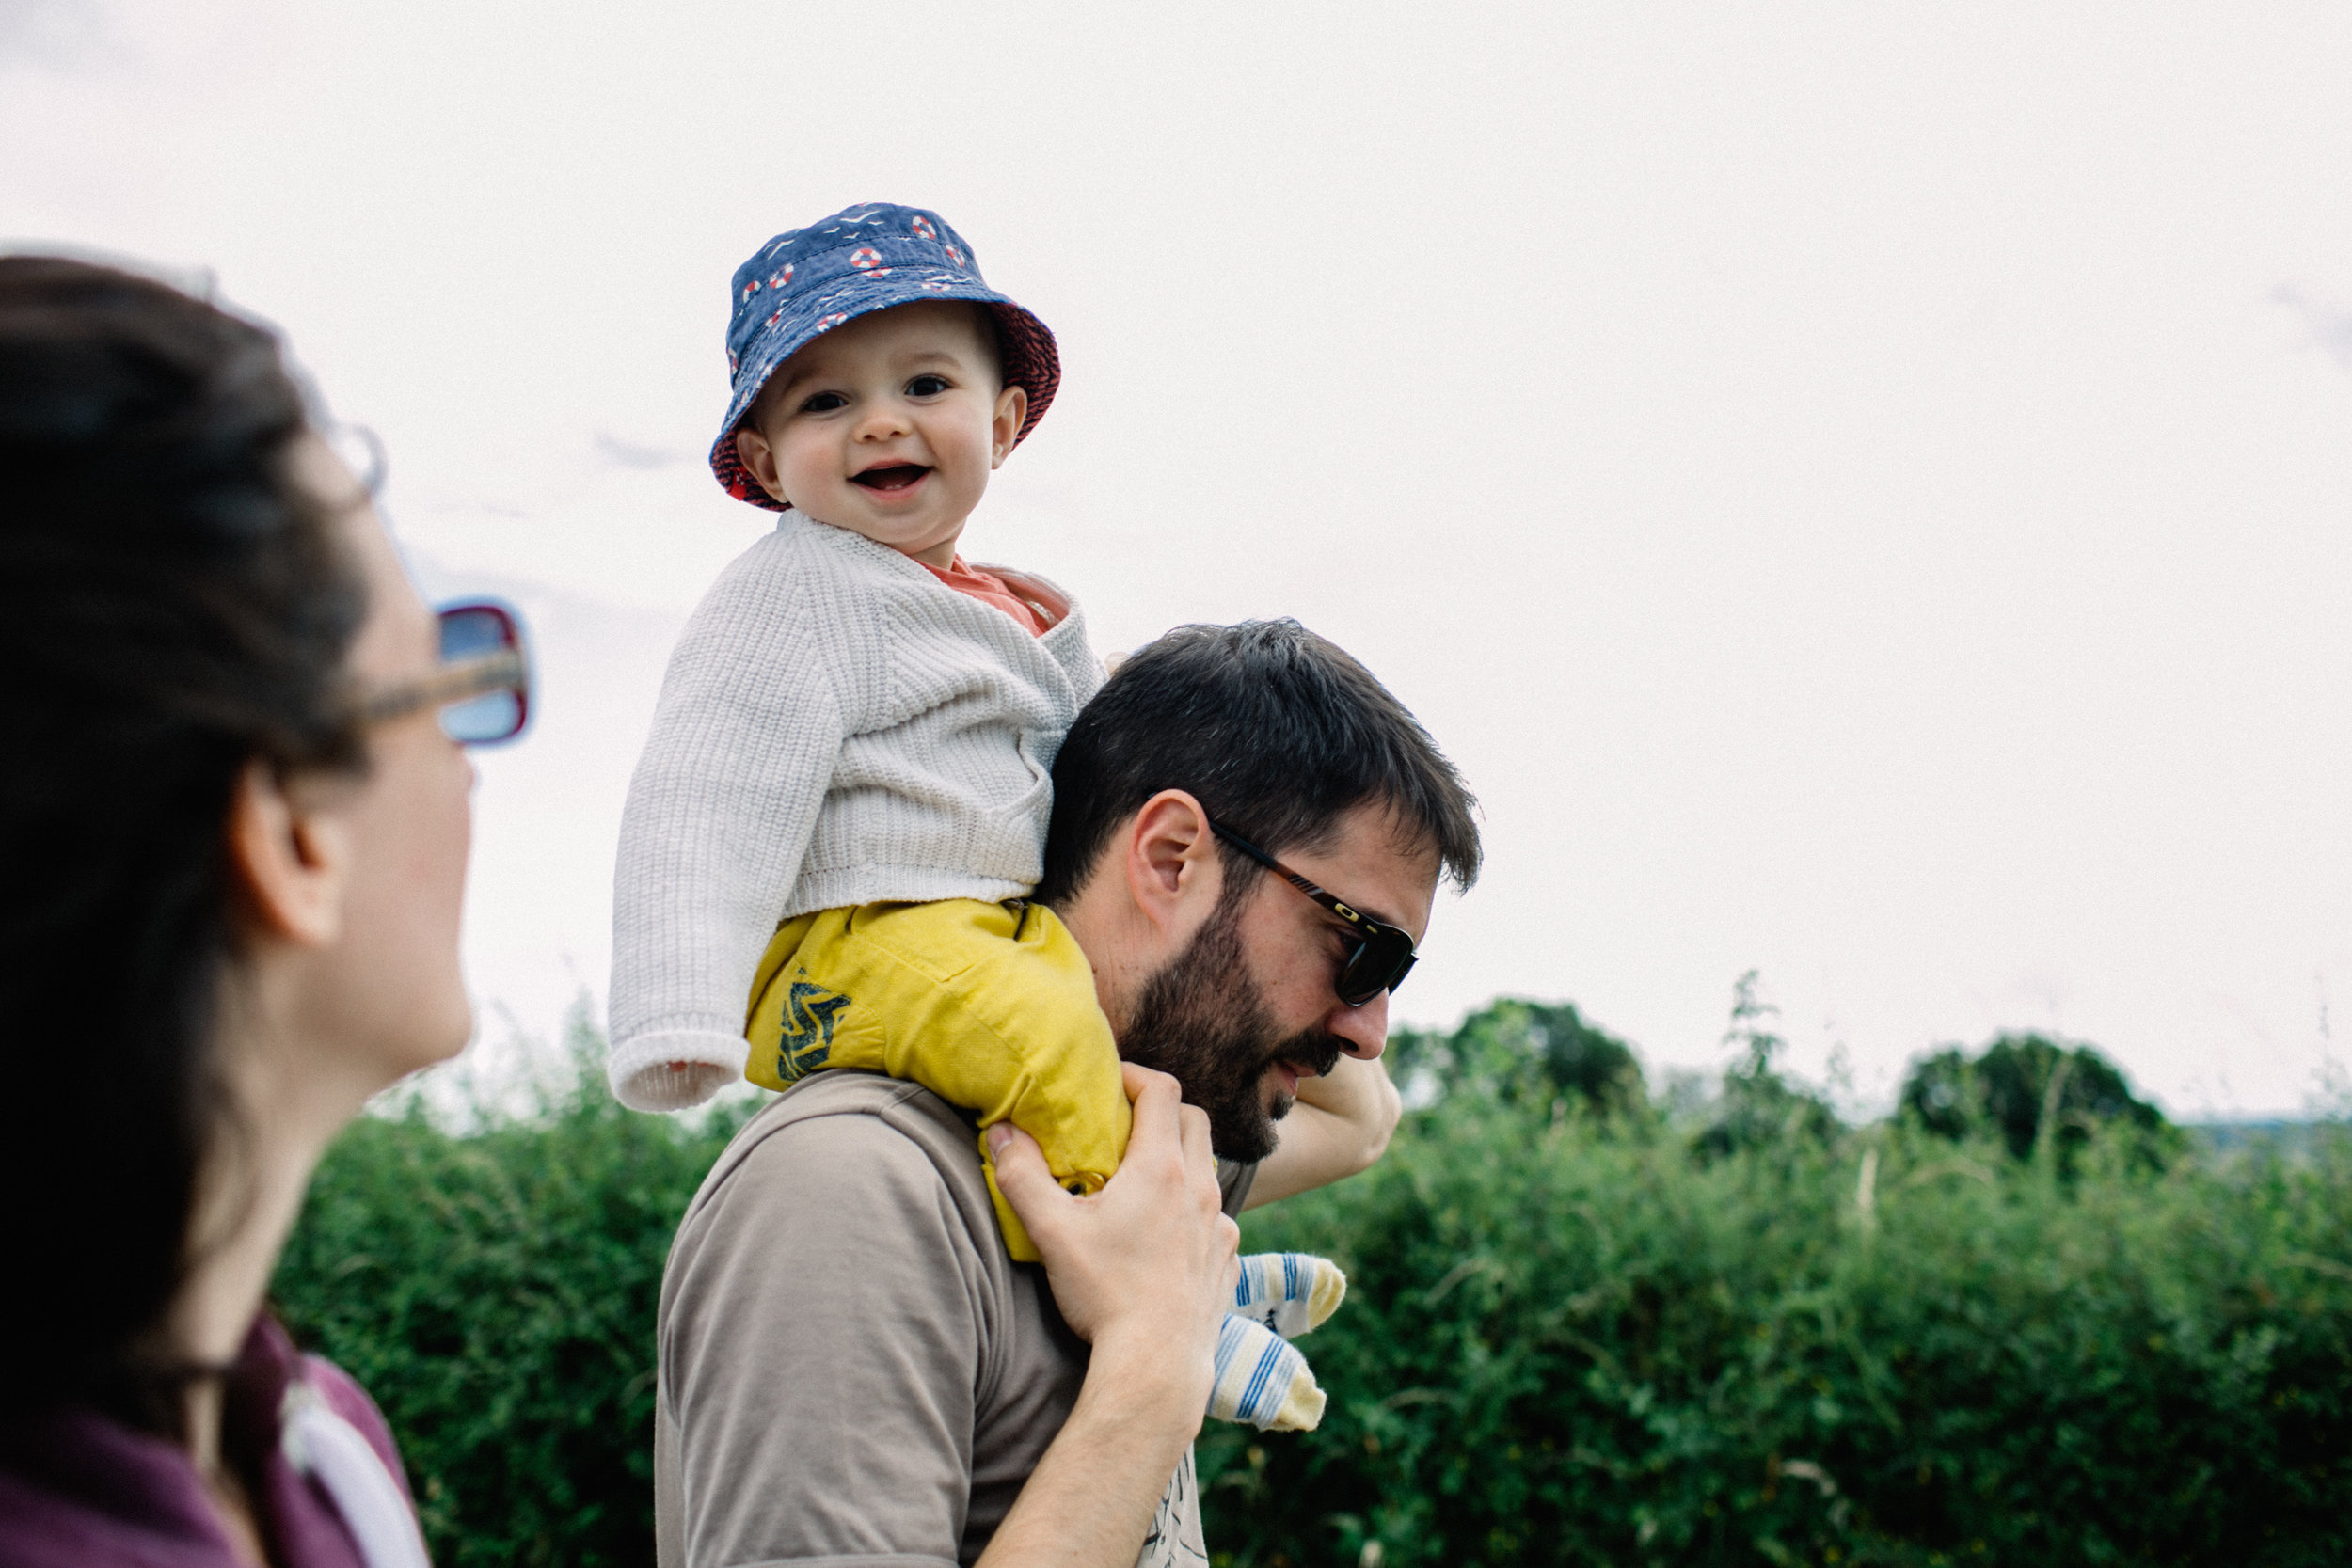 Baby Camille on his dad's shoulders during a small walk.